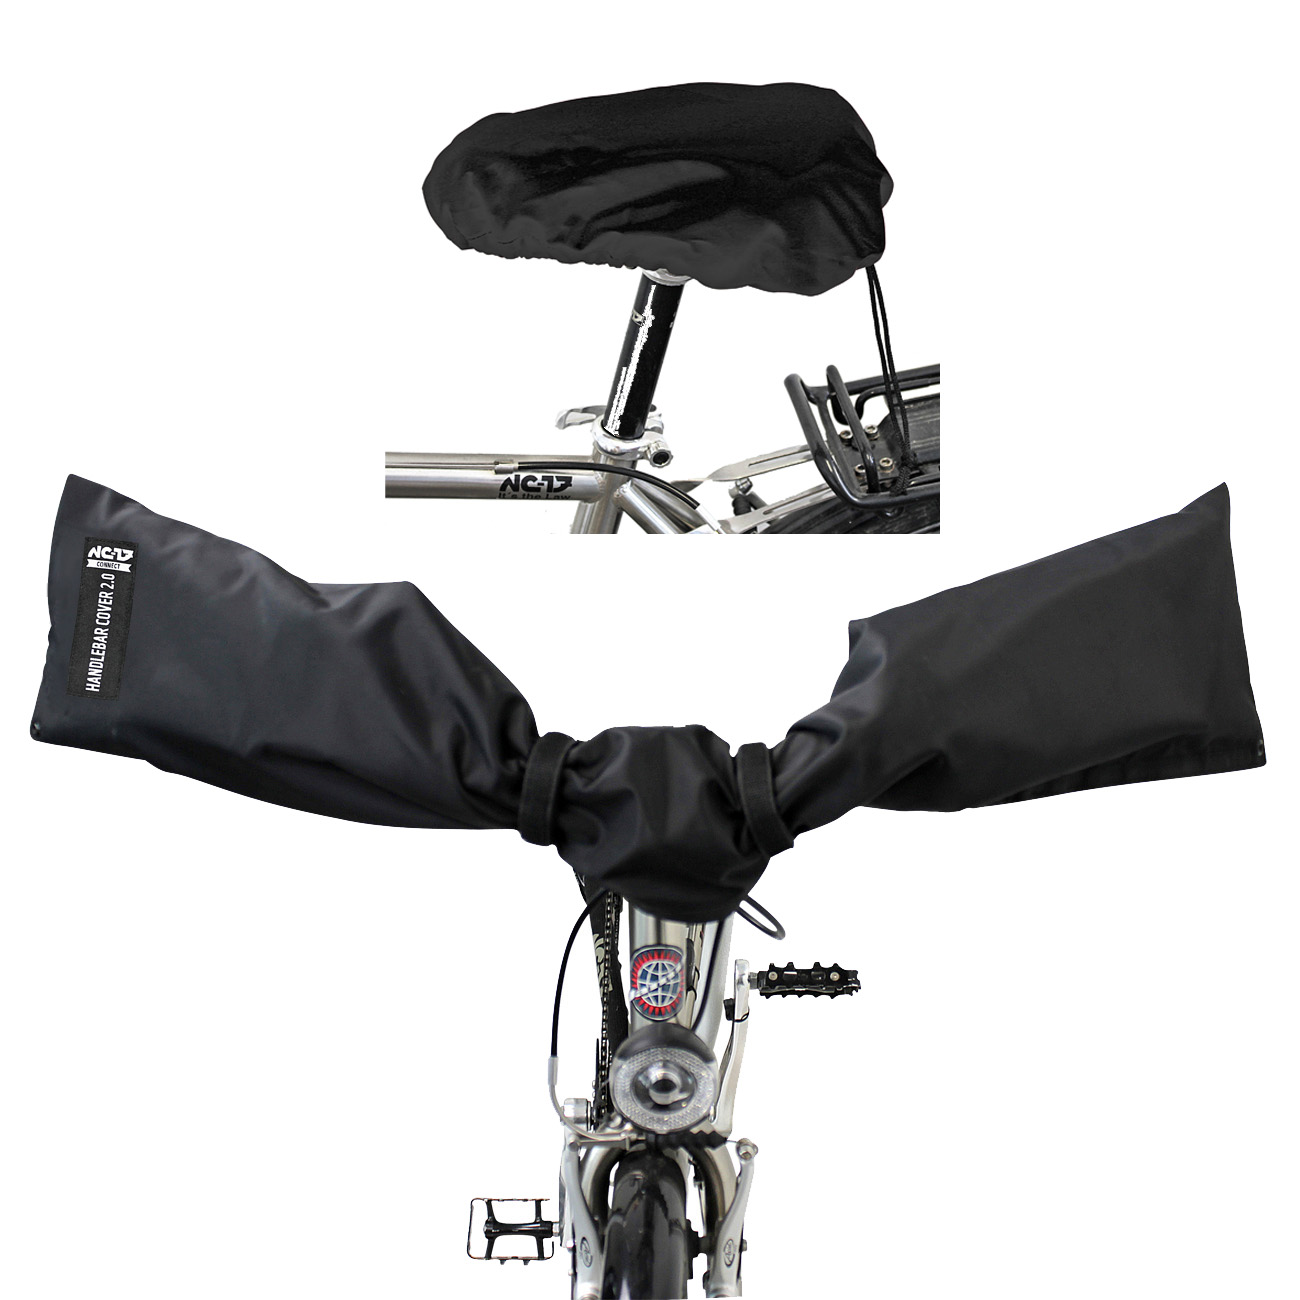 NC-17 Connect Handlebar + Seat Cover 2.0<br/>on size fits all, schwarz<br/>